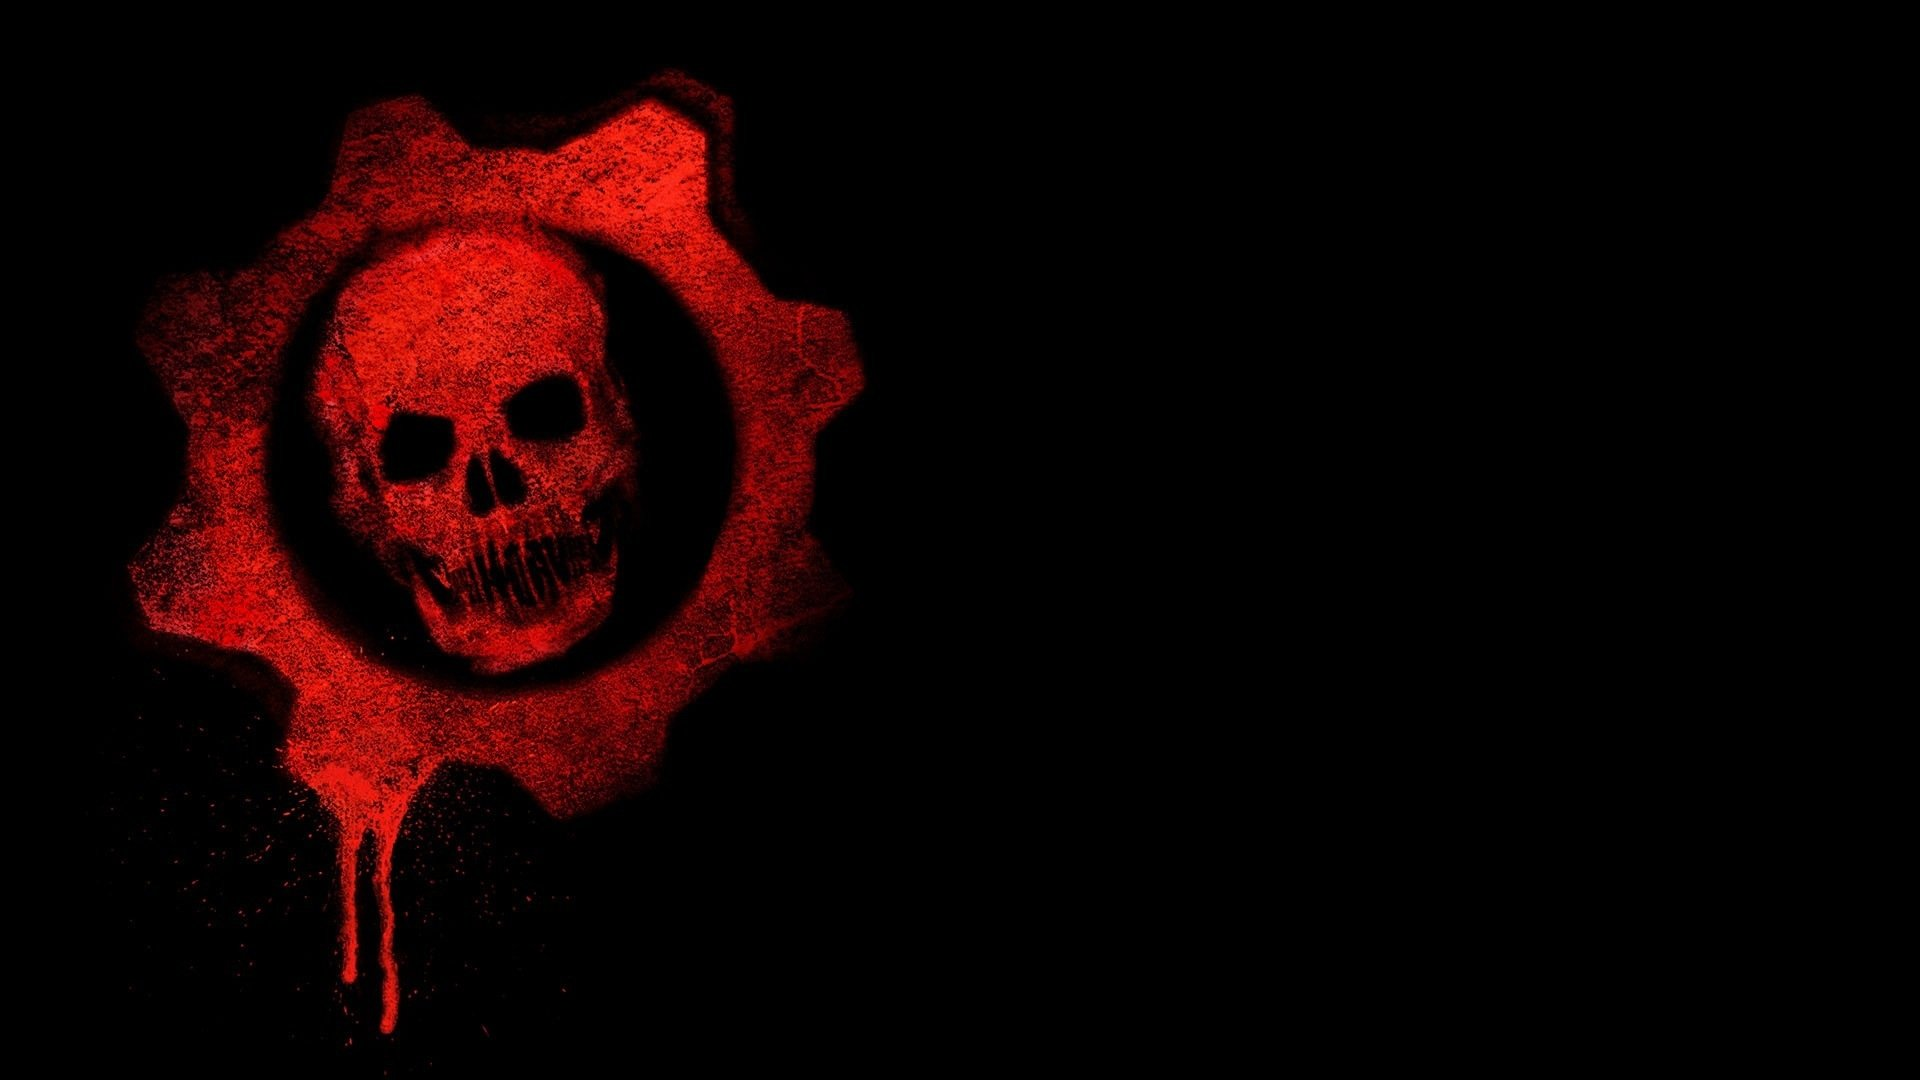 10 Latest Marine Corps Wallpaper Hd Full Hd 1080p For Pc: Gears Of War Fondo De Pantalla HD